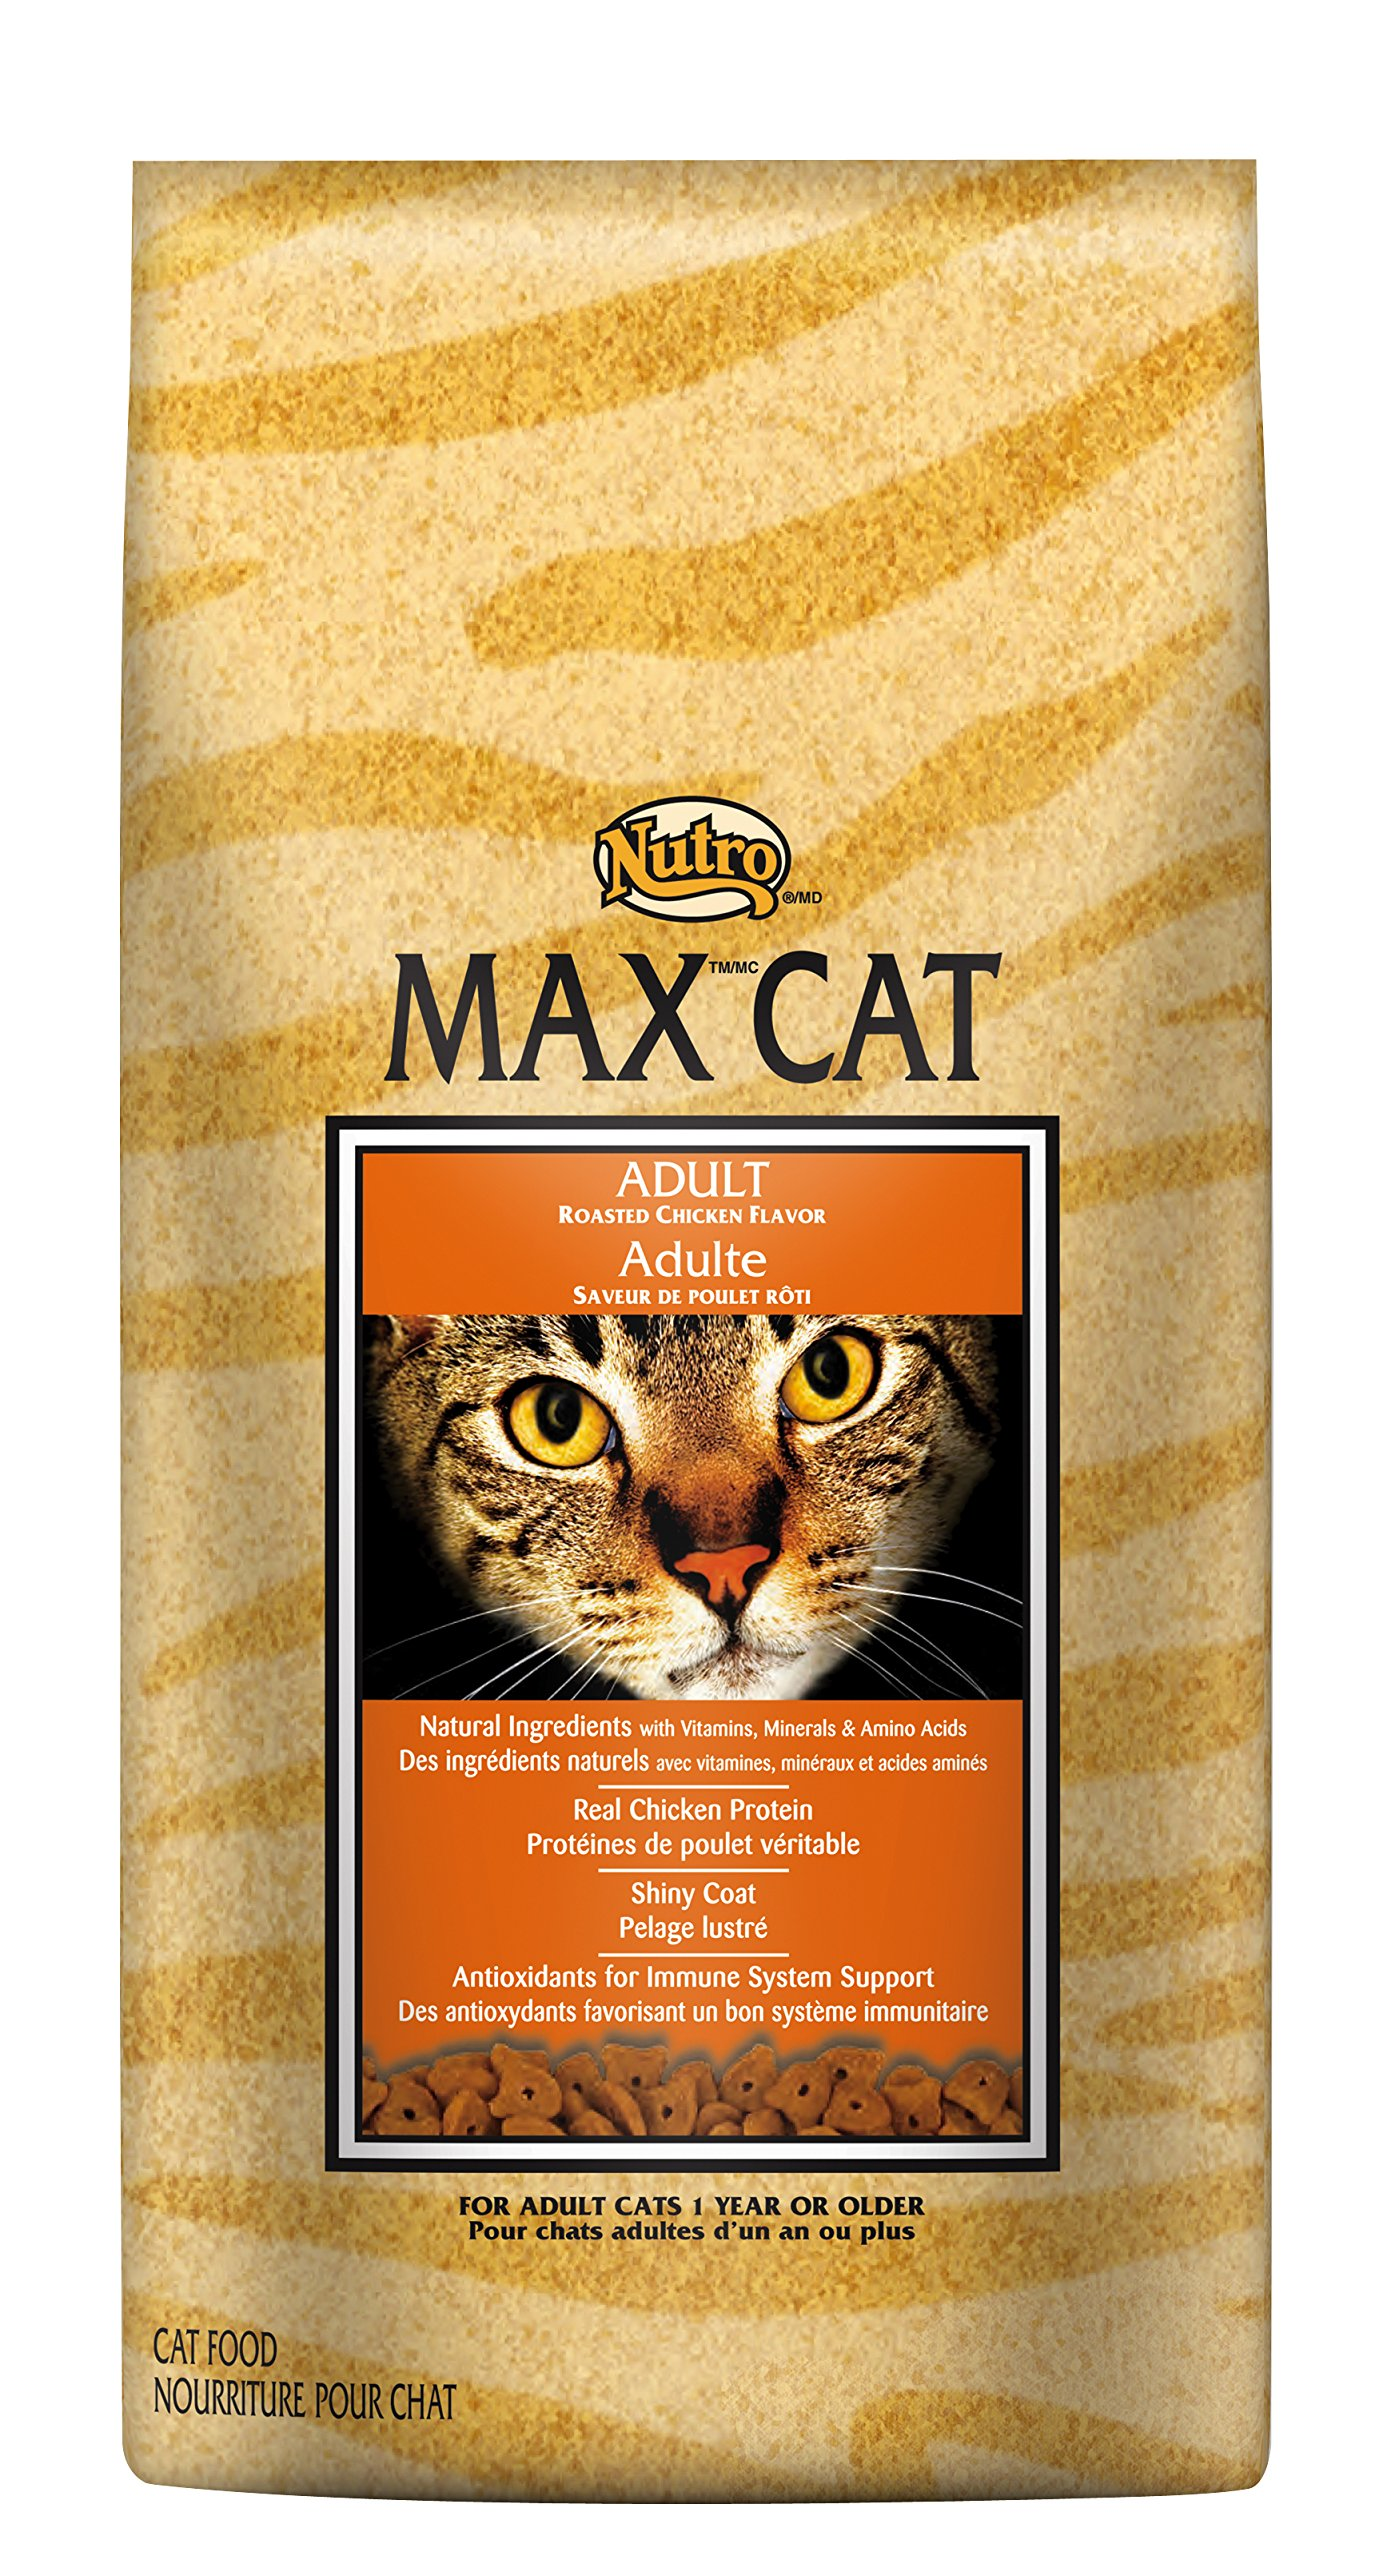 Nutro Max Cat Adult Roasted Chicken Flavor Dry Cat Food (1)16 Pounds; Rich In Nutrients And Full Of Flavor; Supports Healthy Joints & Healthy Skin And Coat by Nutro